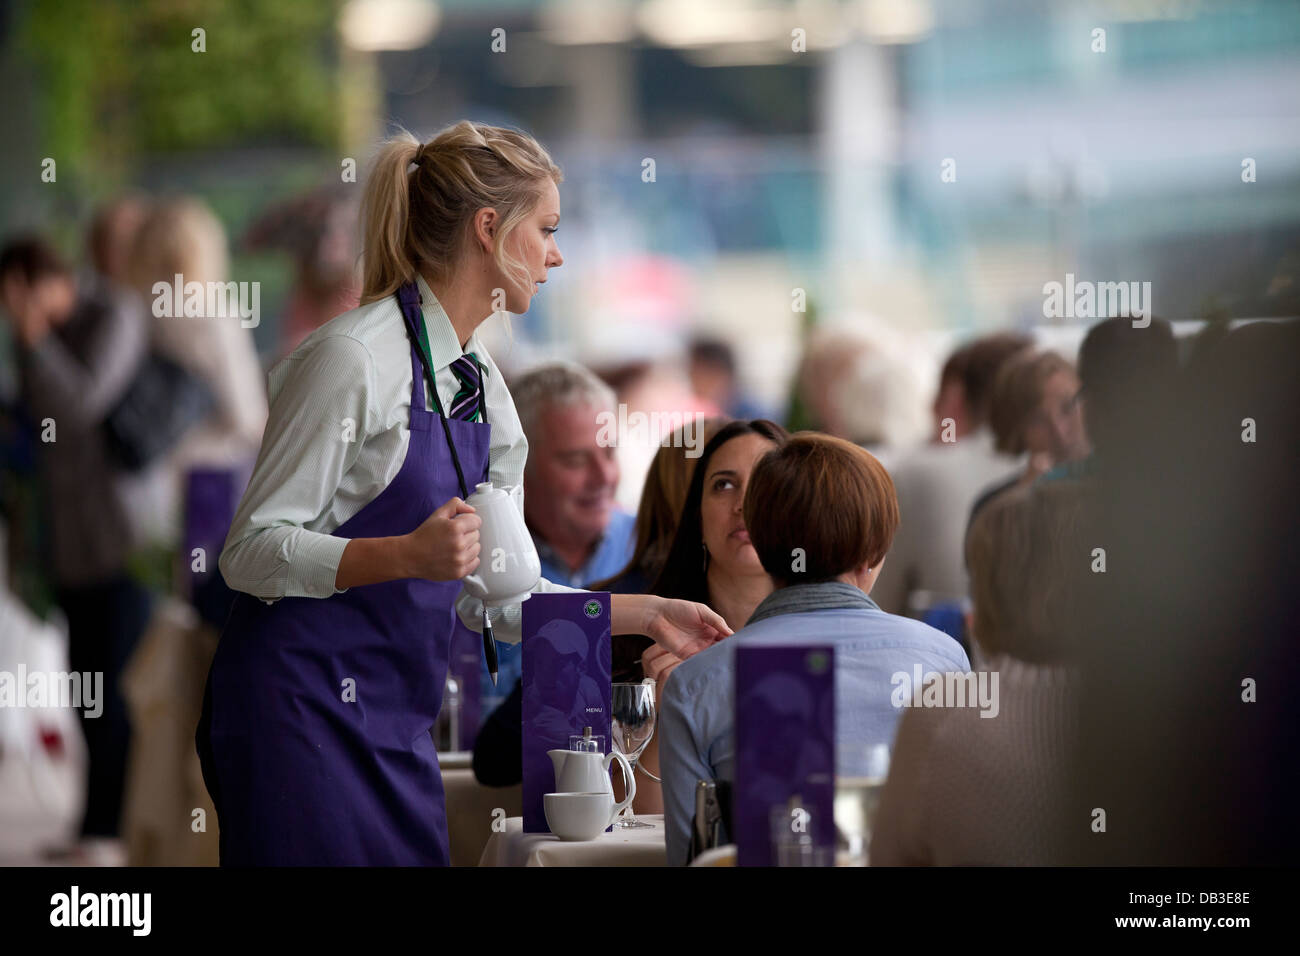 Busy Restaurant Waiter Serving Stock Photos & Busy